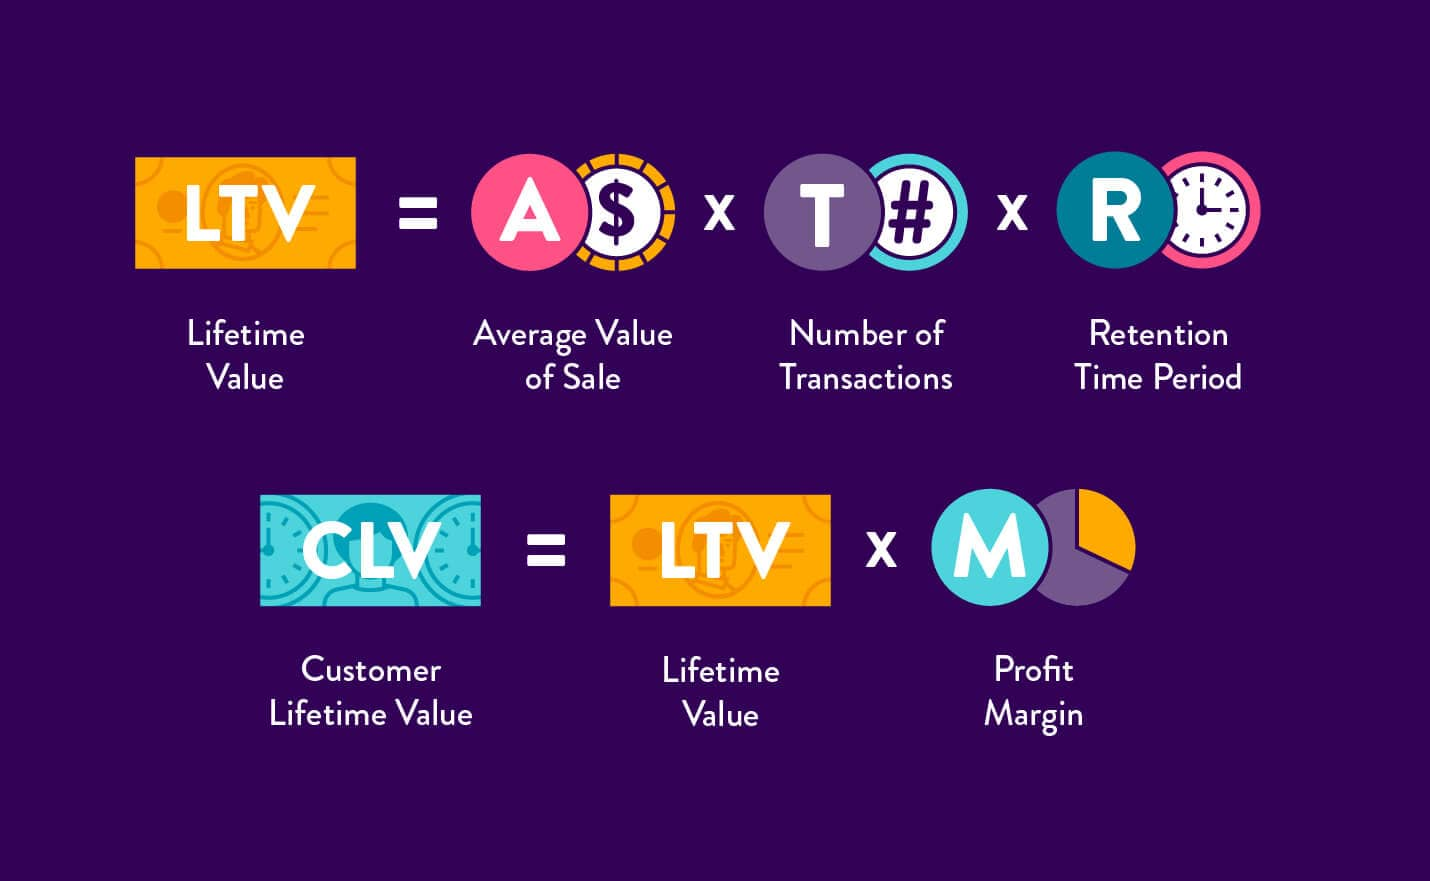 Lifetime Value vs. Customer Lifetime Value - Calculating the Difference (Formula)